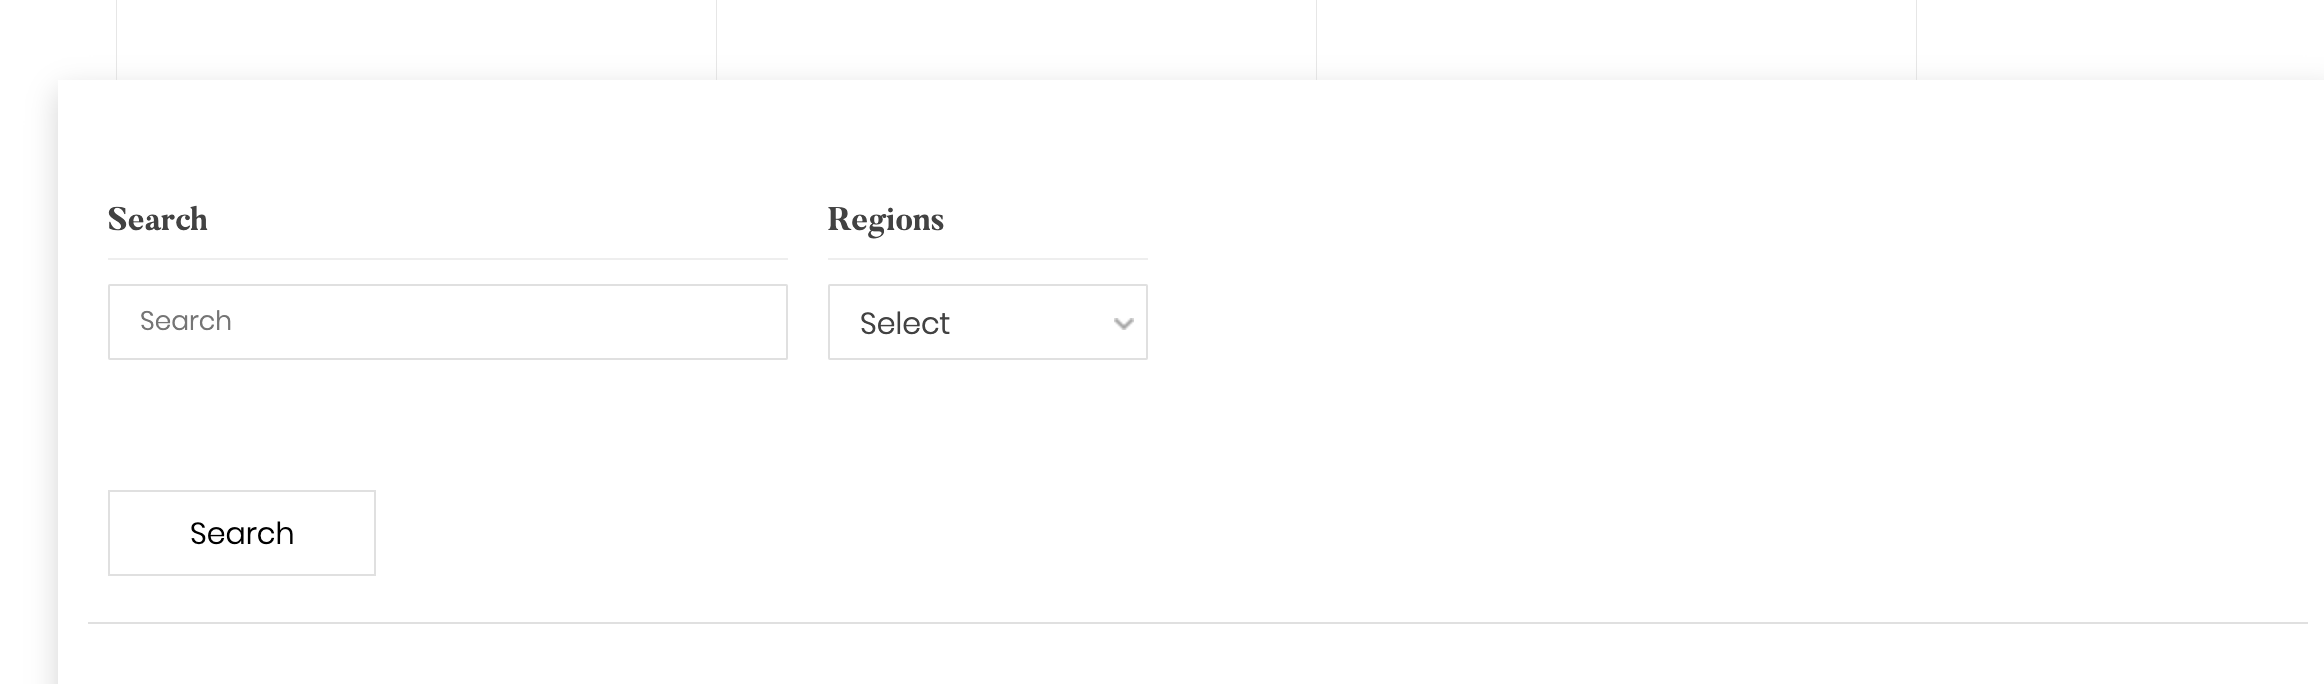 display search fields